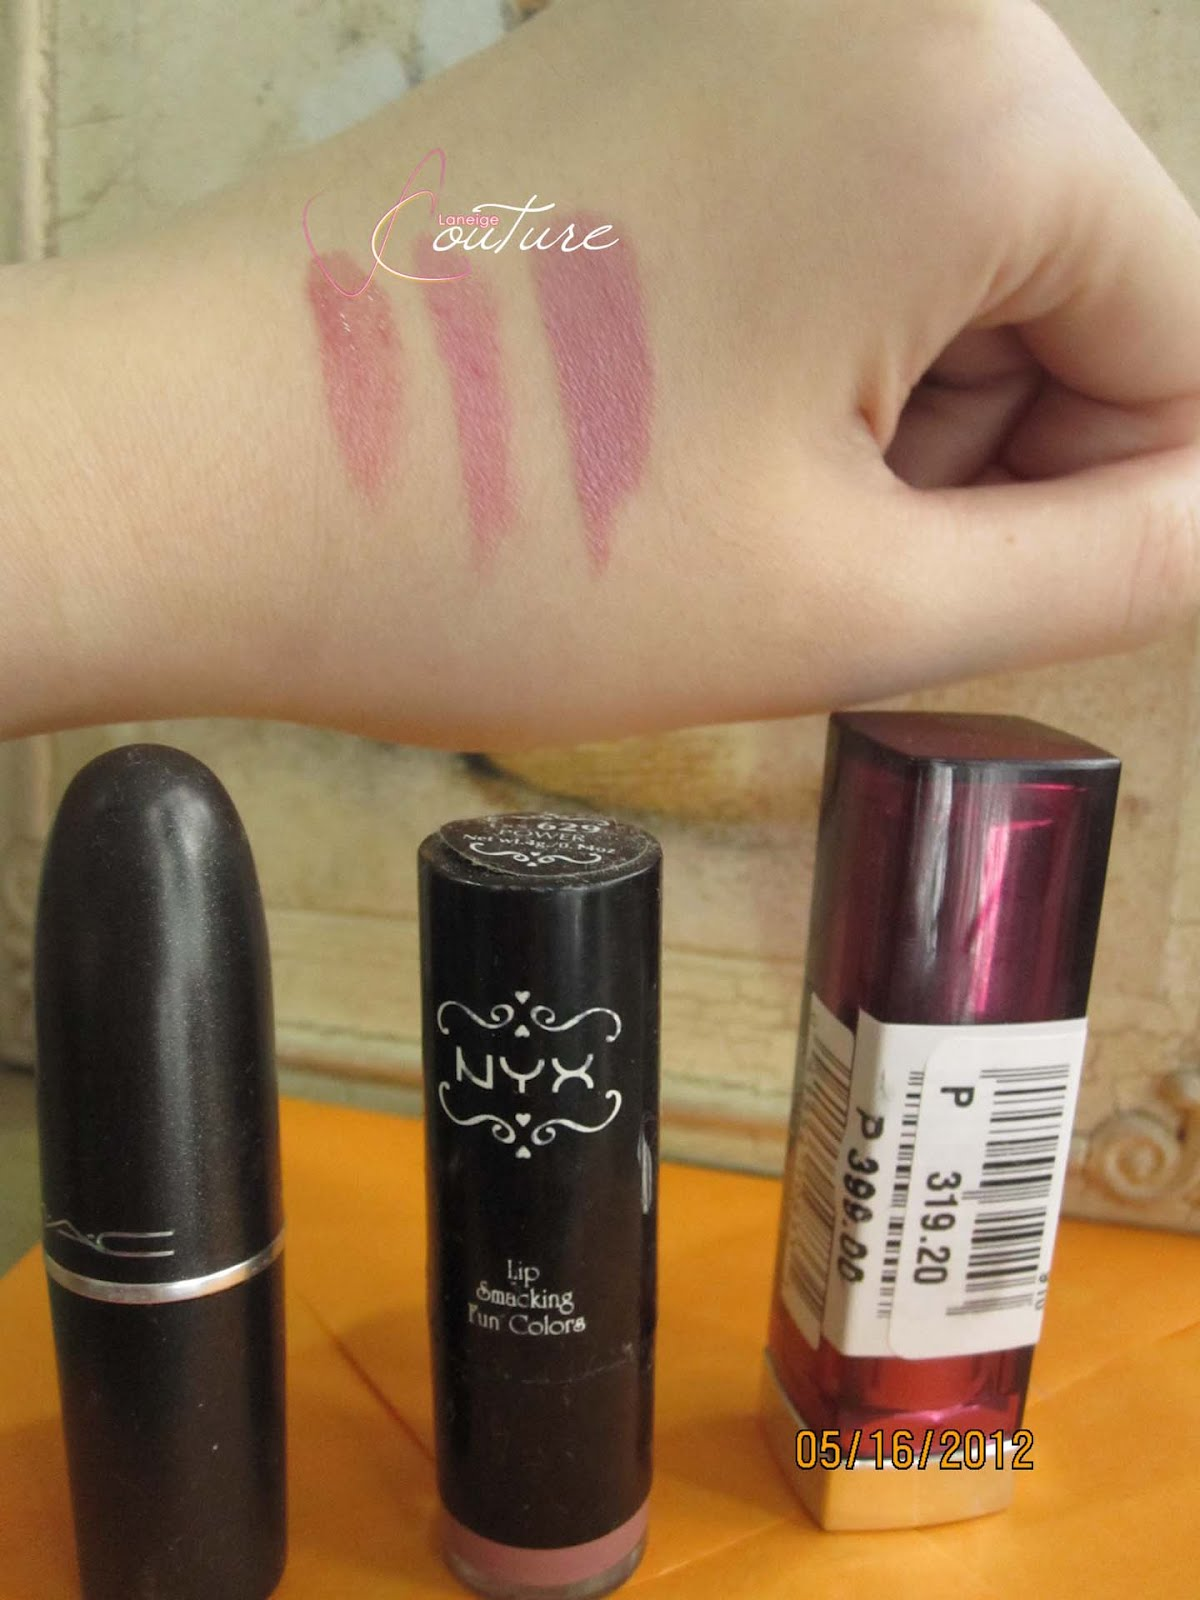 laneigecouture: the search for mac playtime dupe in manila